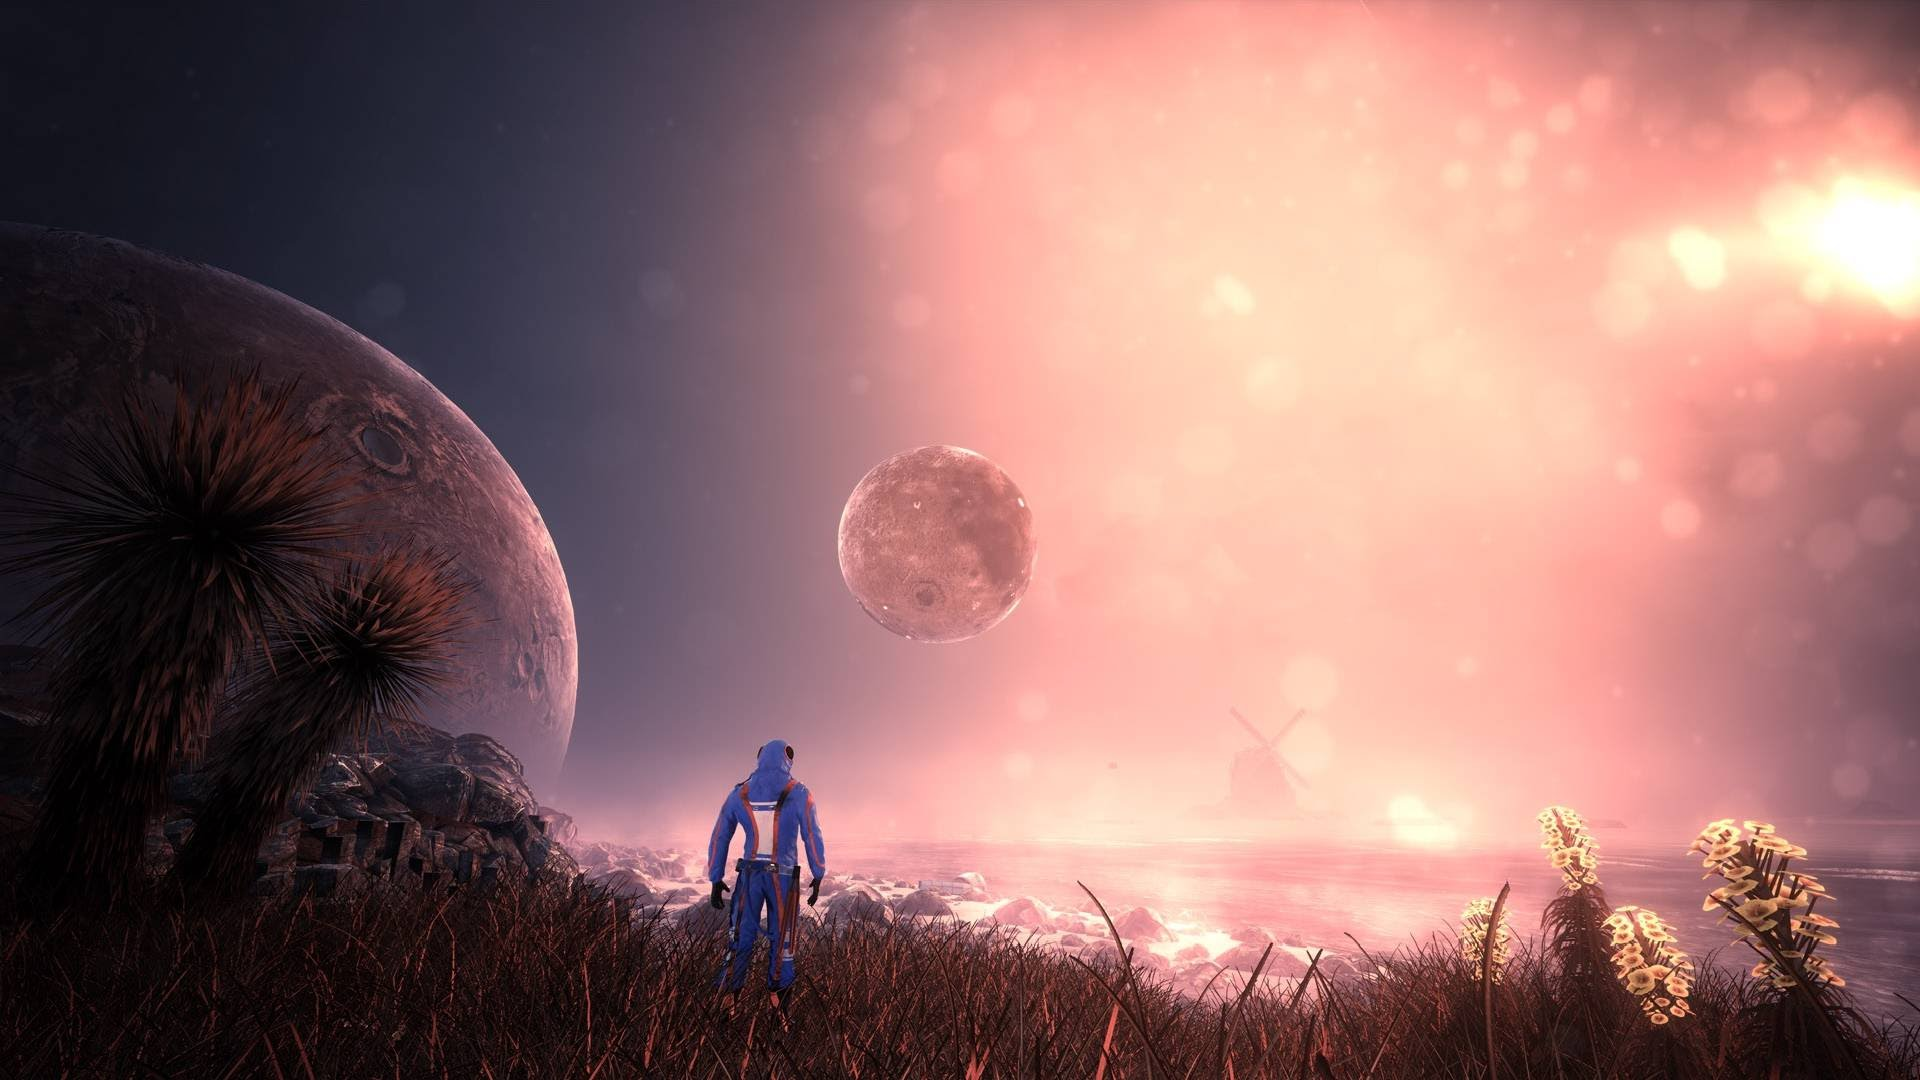 The Solus Project Runs At 900P@30 On XB1; Resolution